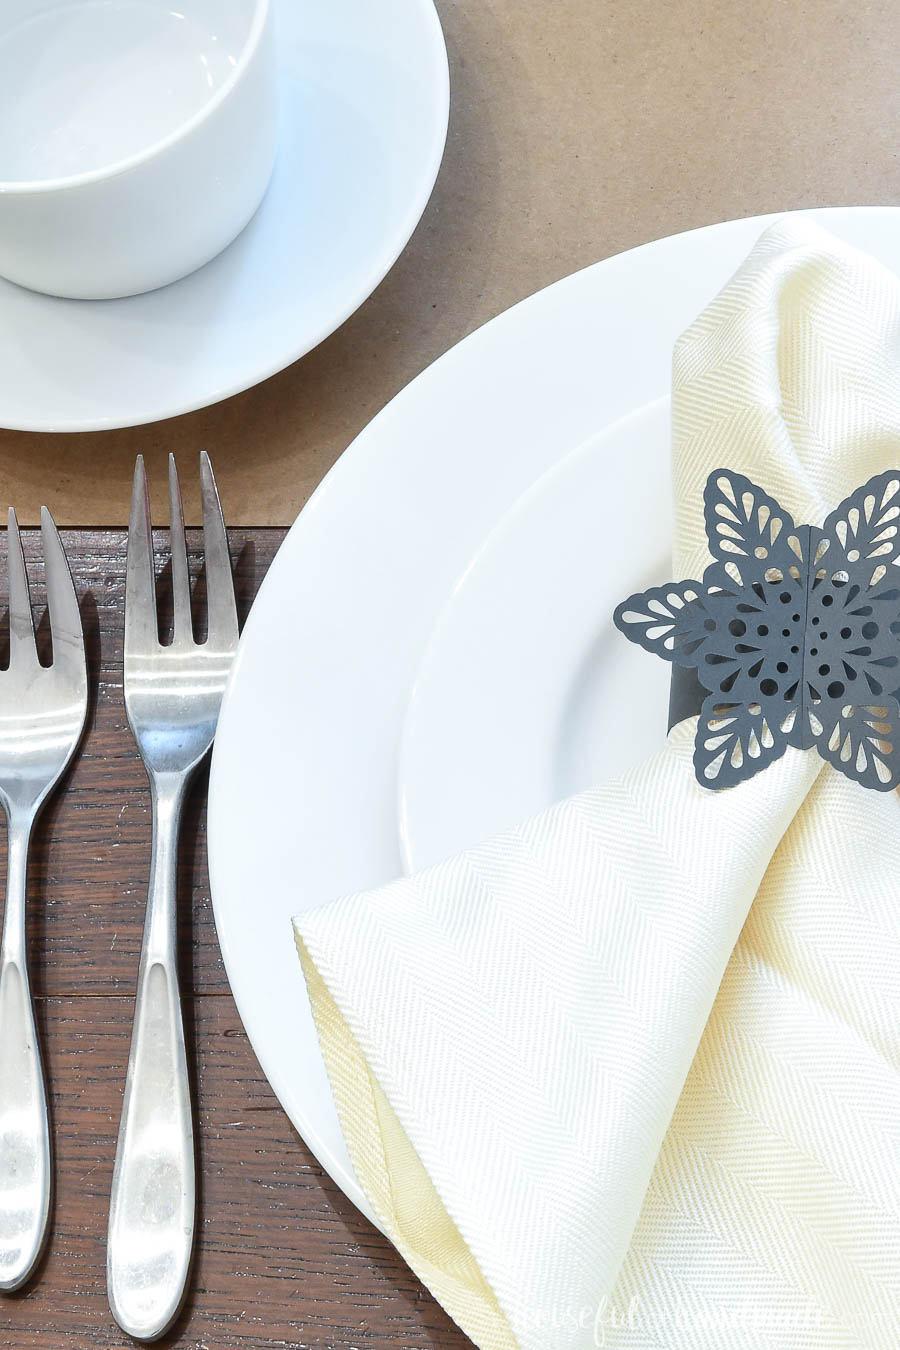 Close-up view of the snowflake napkin rings made out of paper.